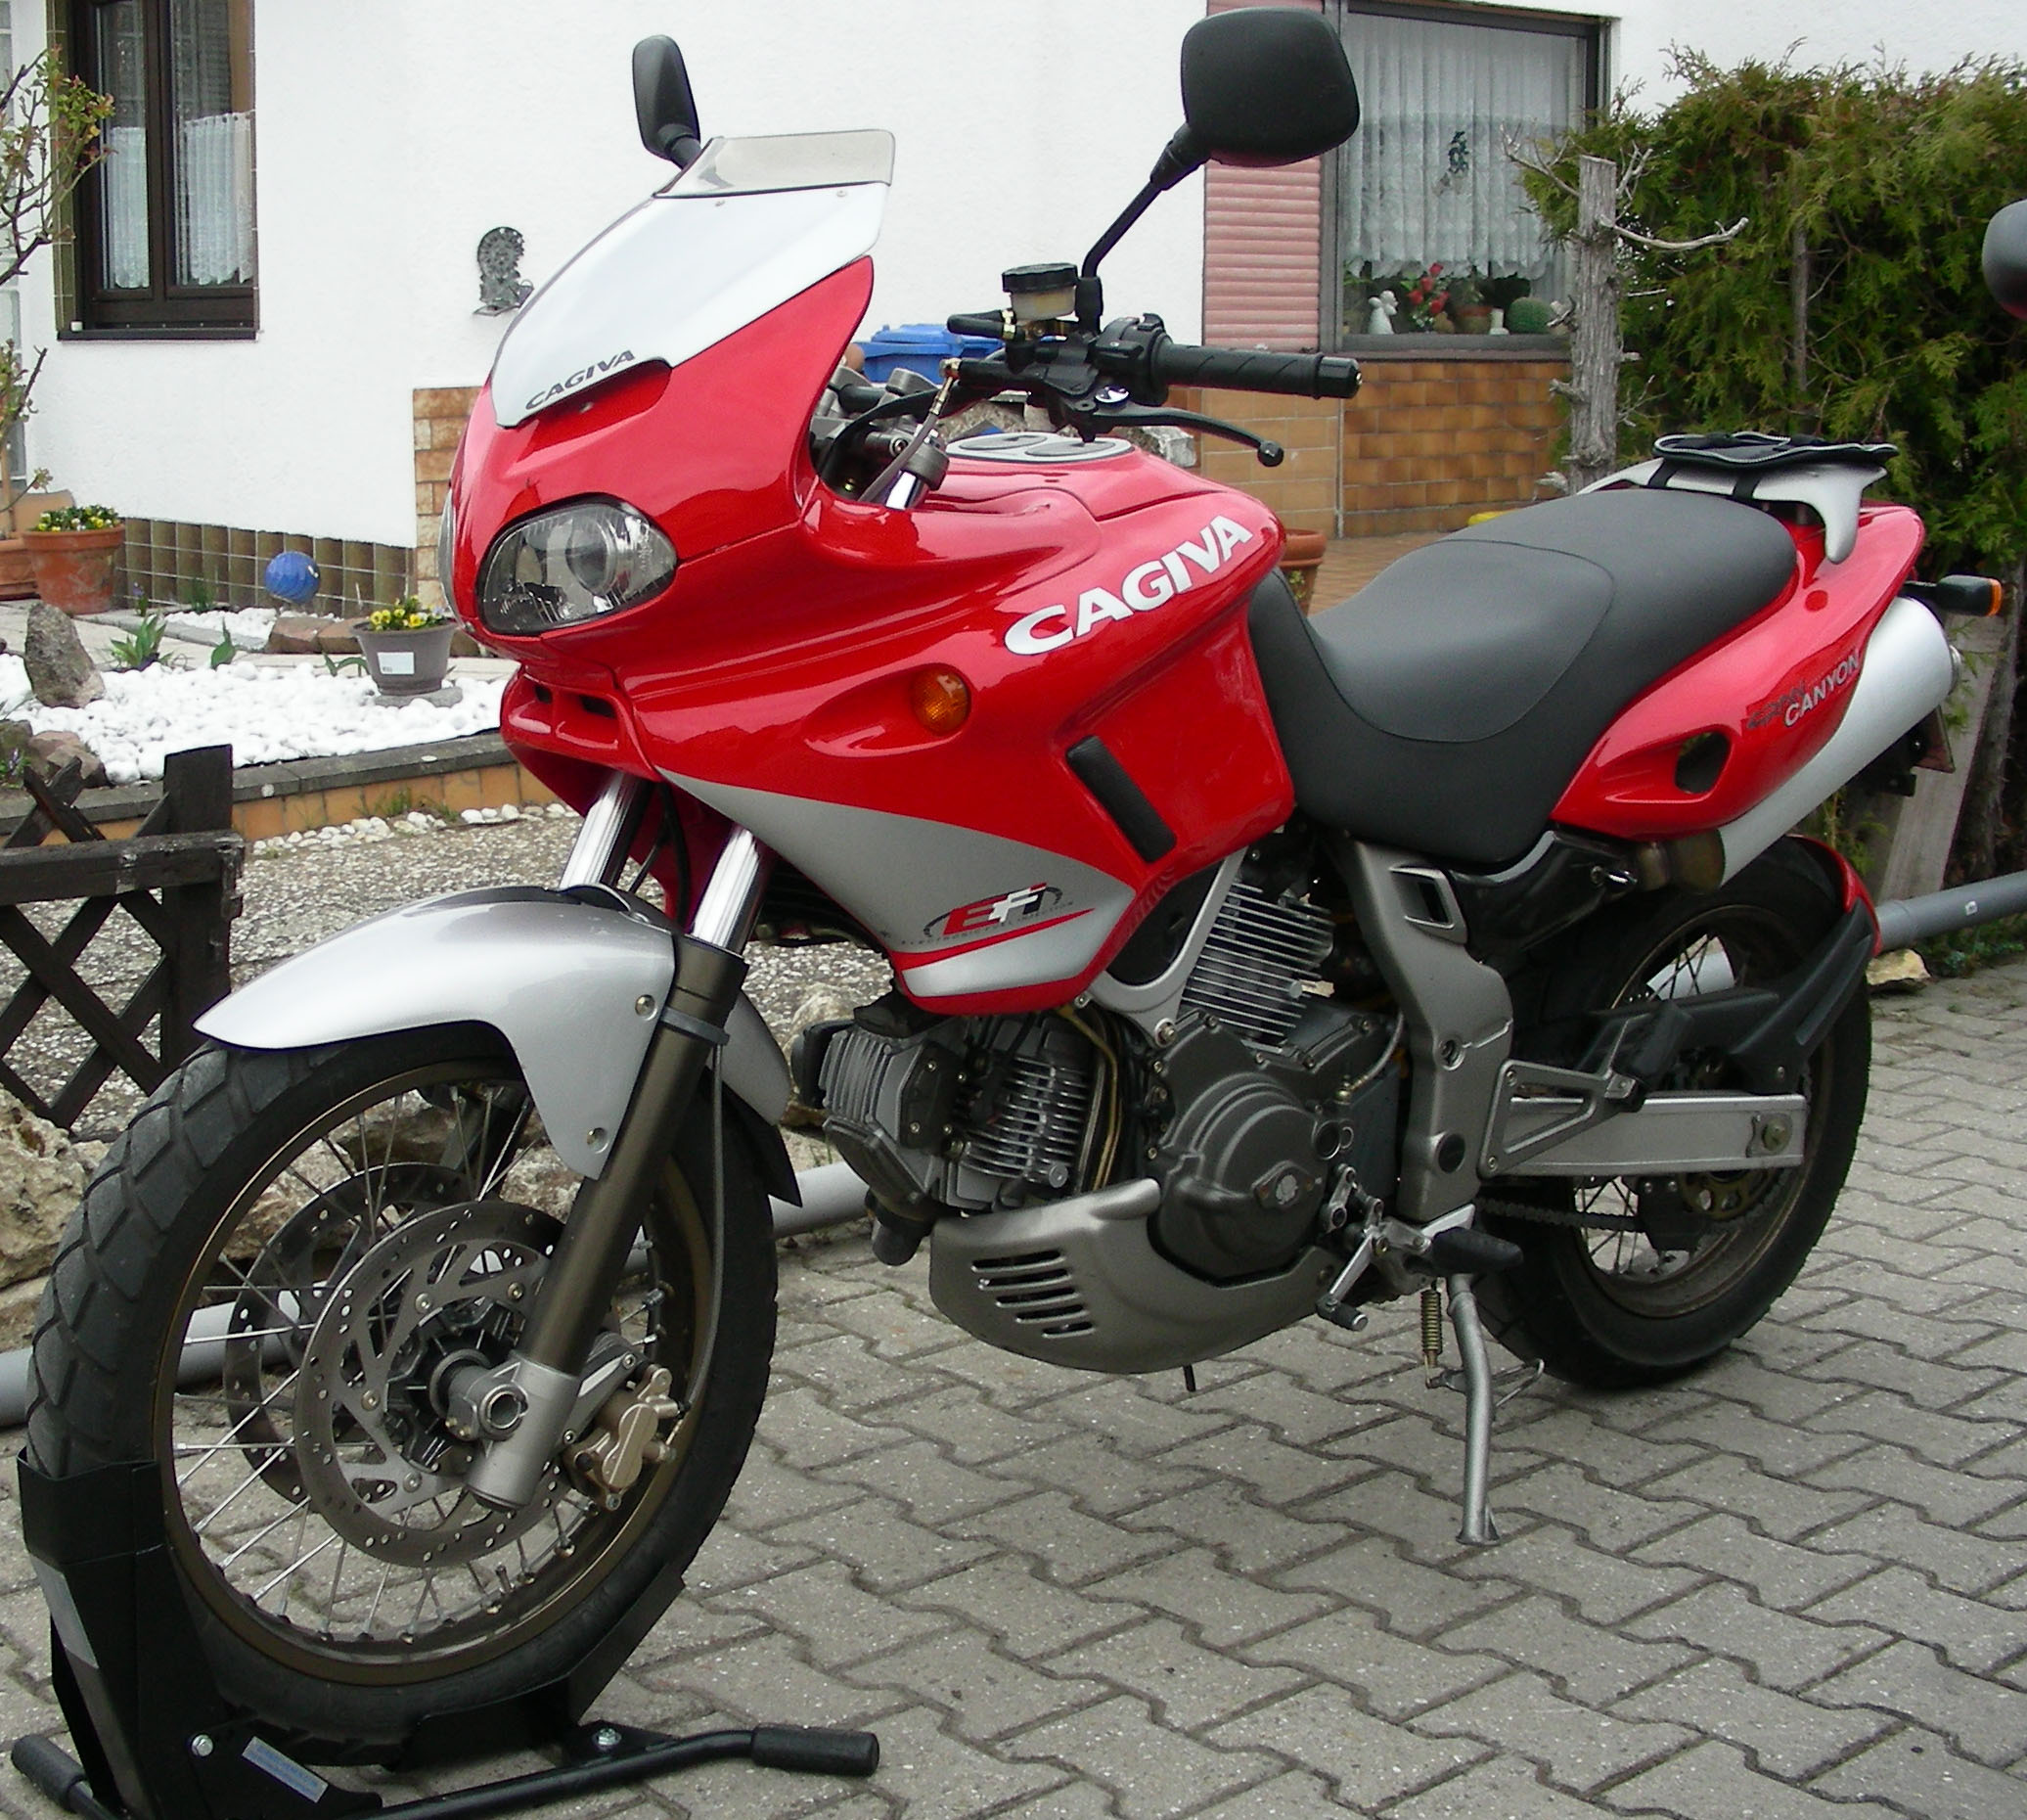 Cagiva Grand Canyon 900 IE 1999 images #67123